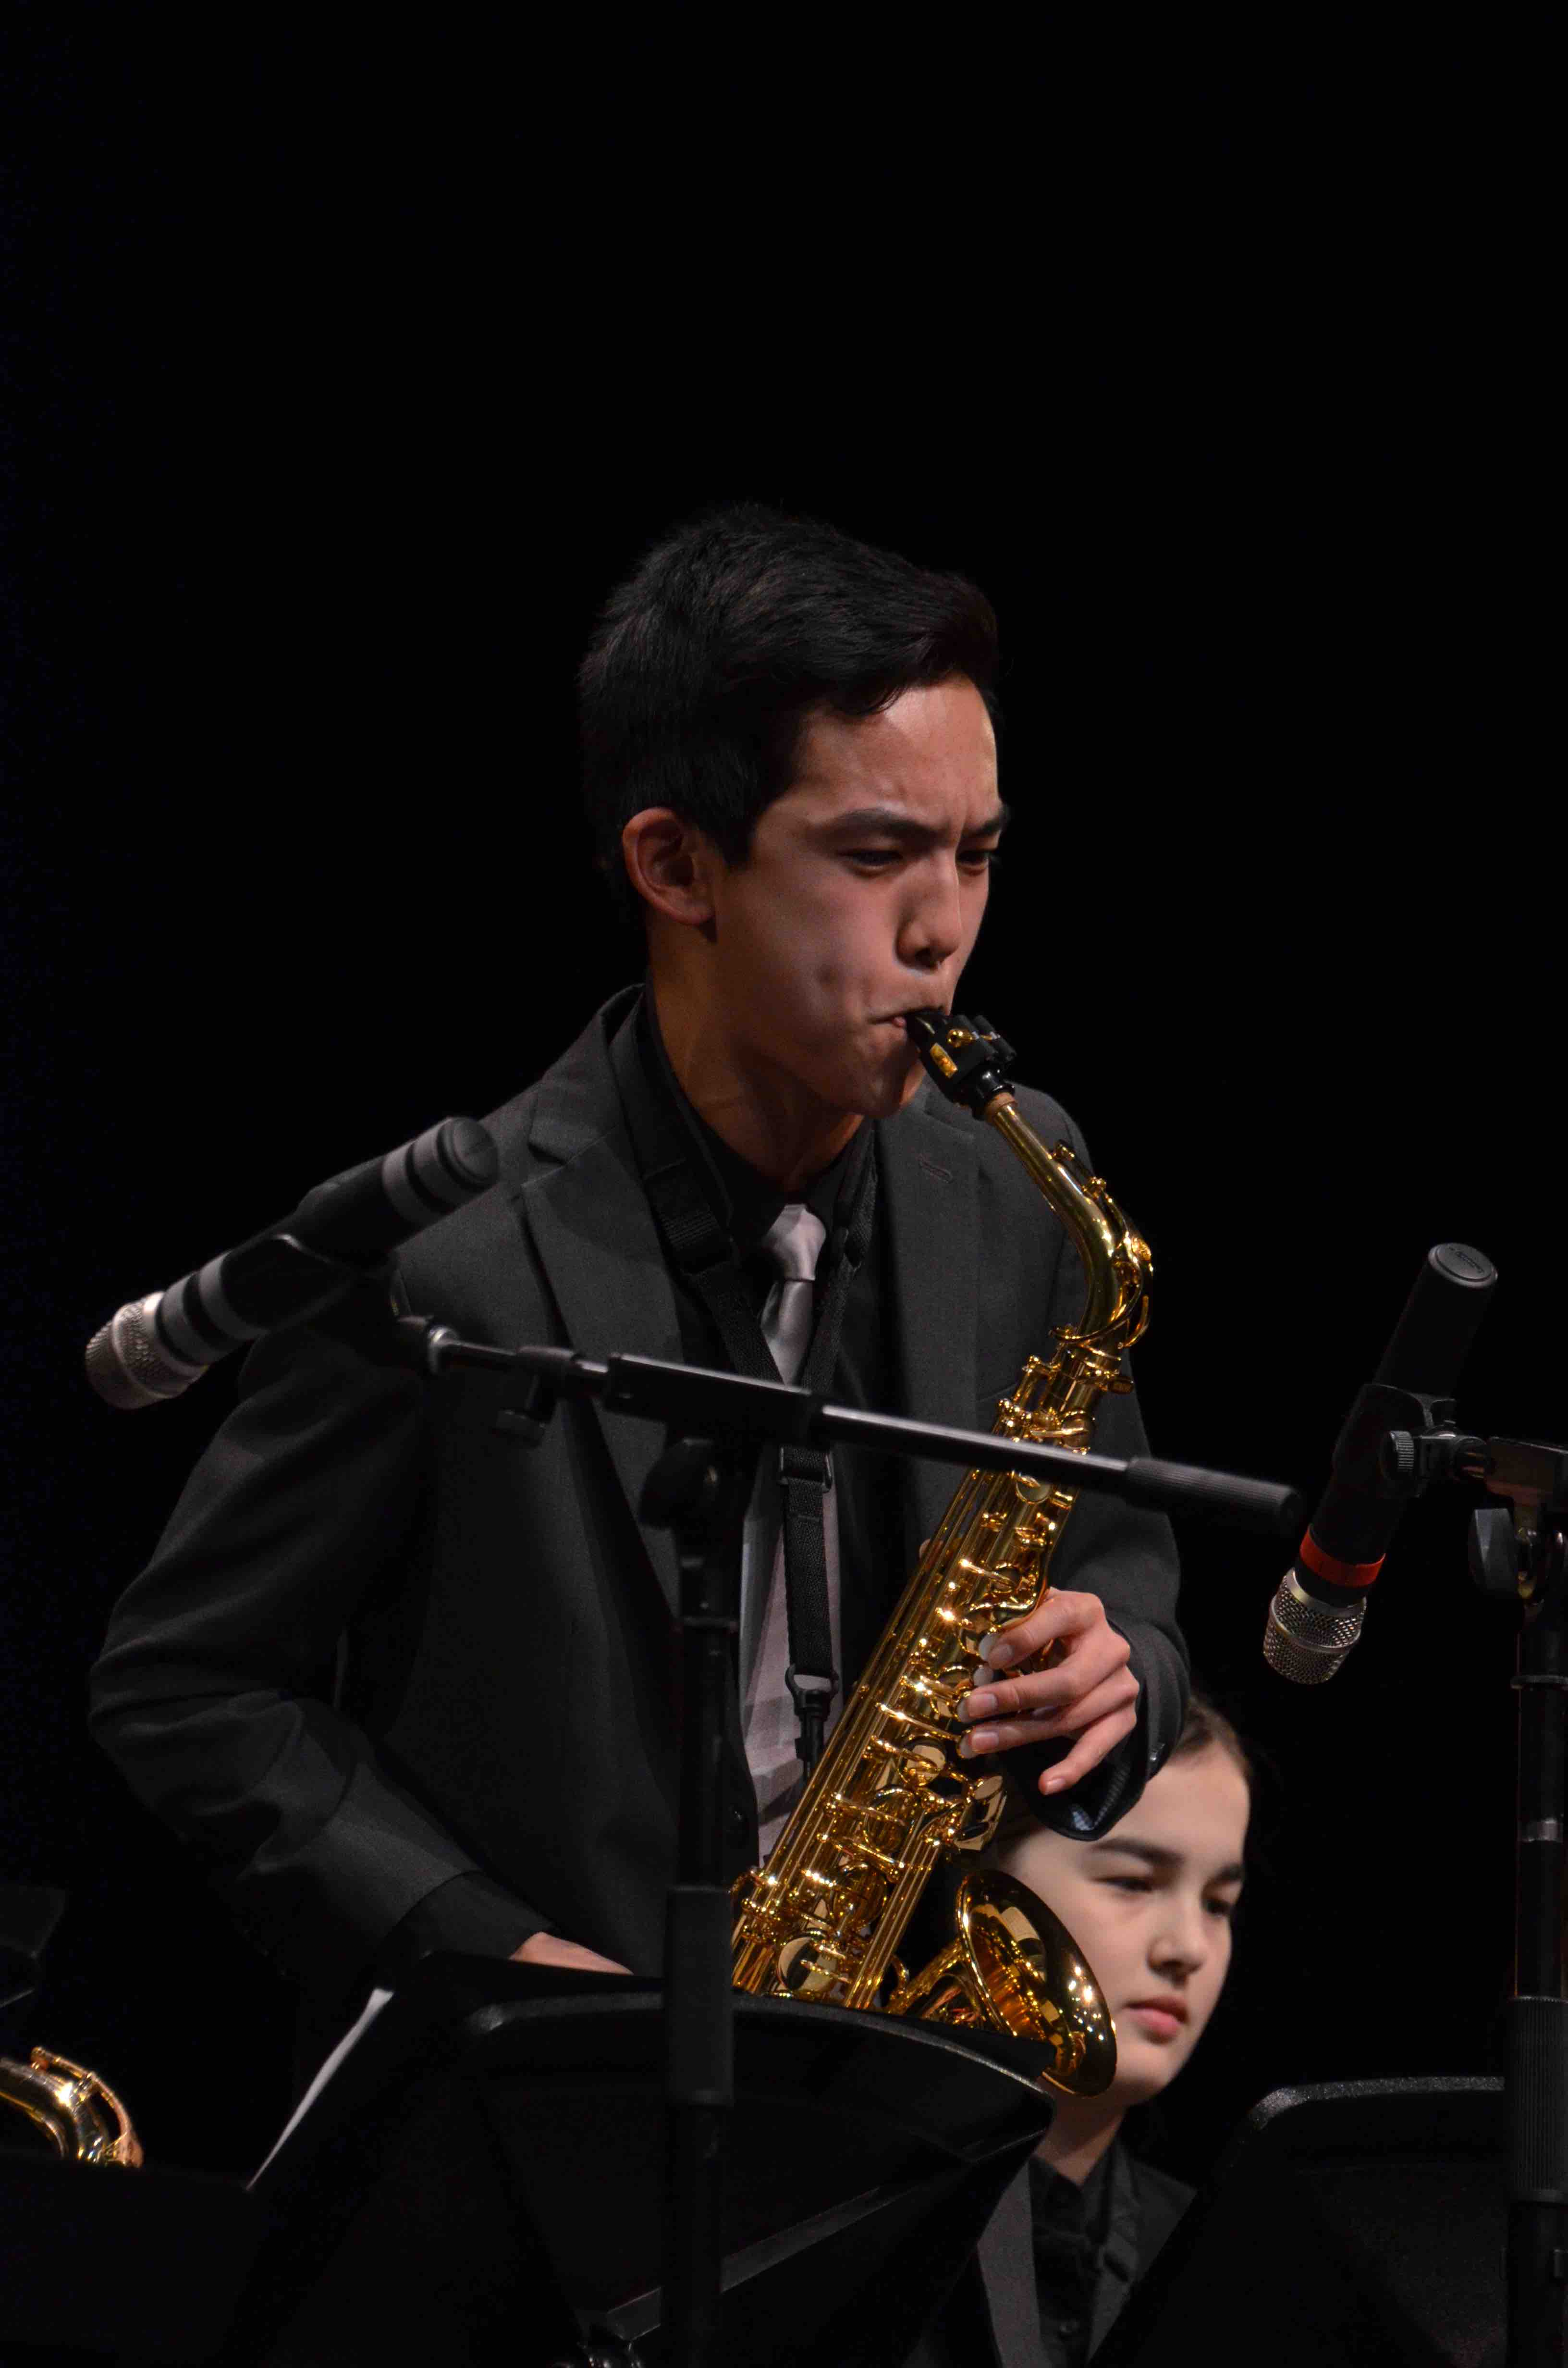 Bryan+Wang+%289%29+plays+saxophone+with+the+upper+school+Jazz+Band.+The+Winter+Concert+took+place+on+January+13+at+the+Mexican+Heritage+Theater.